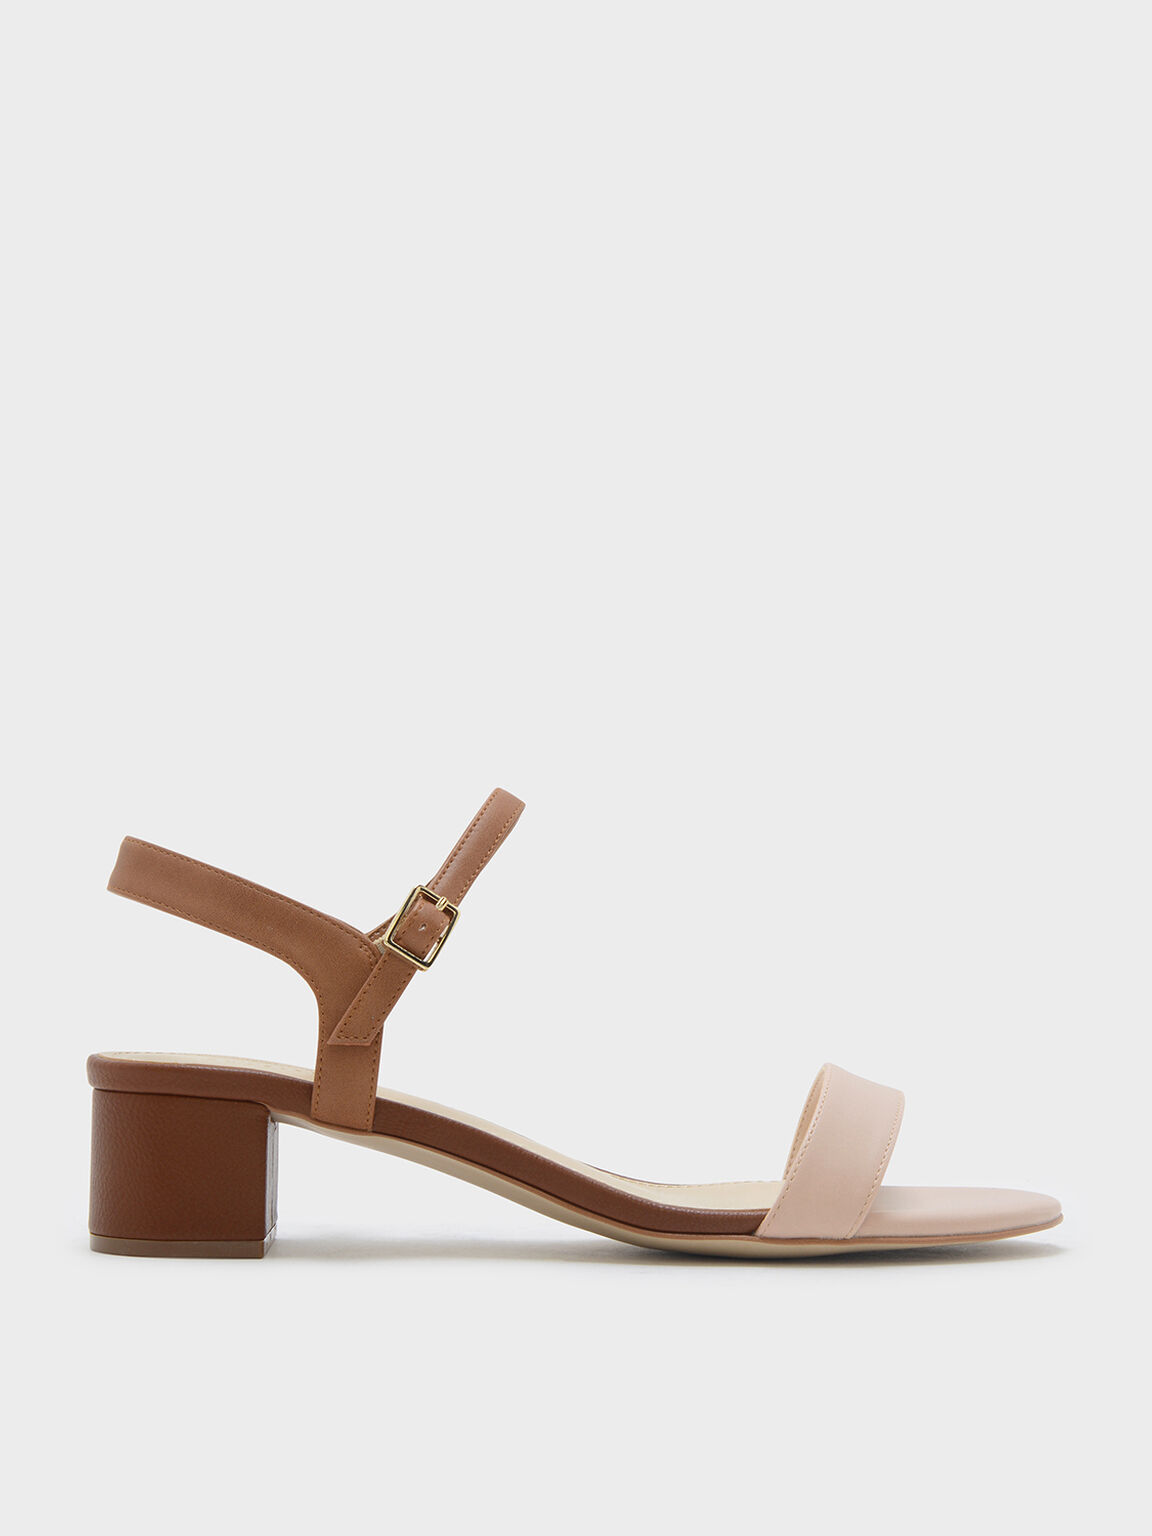 Multi Basic Open Toe Sandals Charles Keith Usd